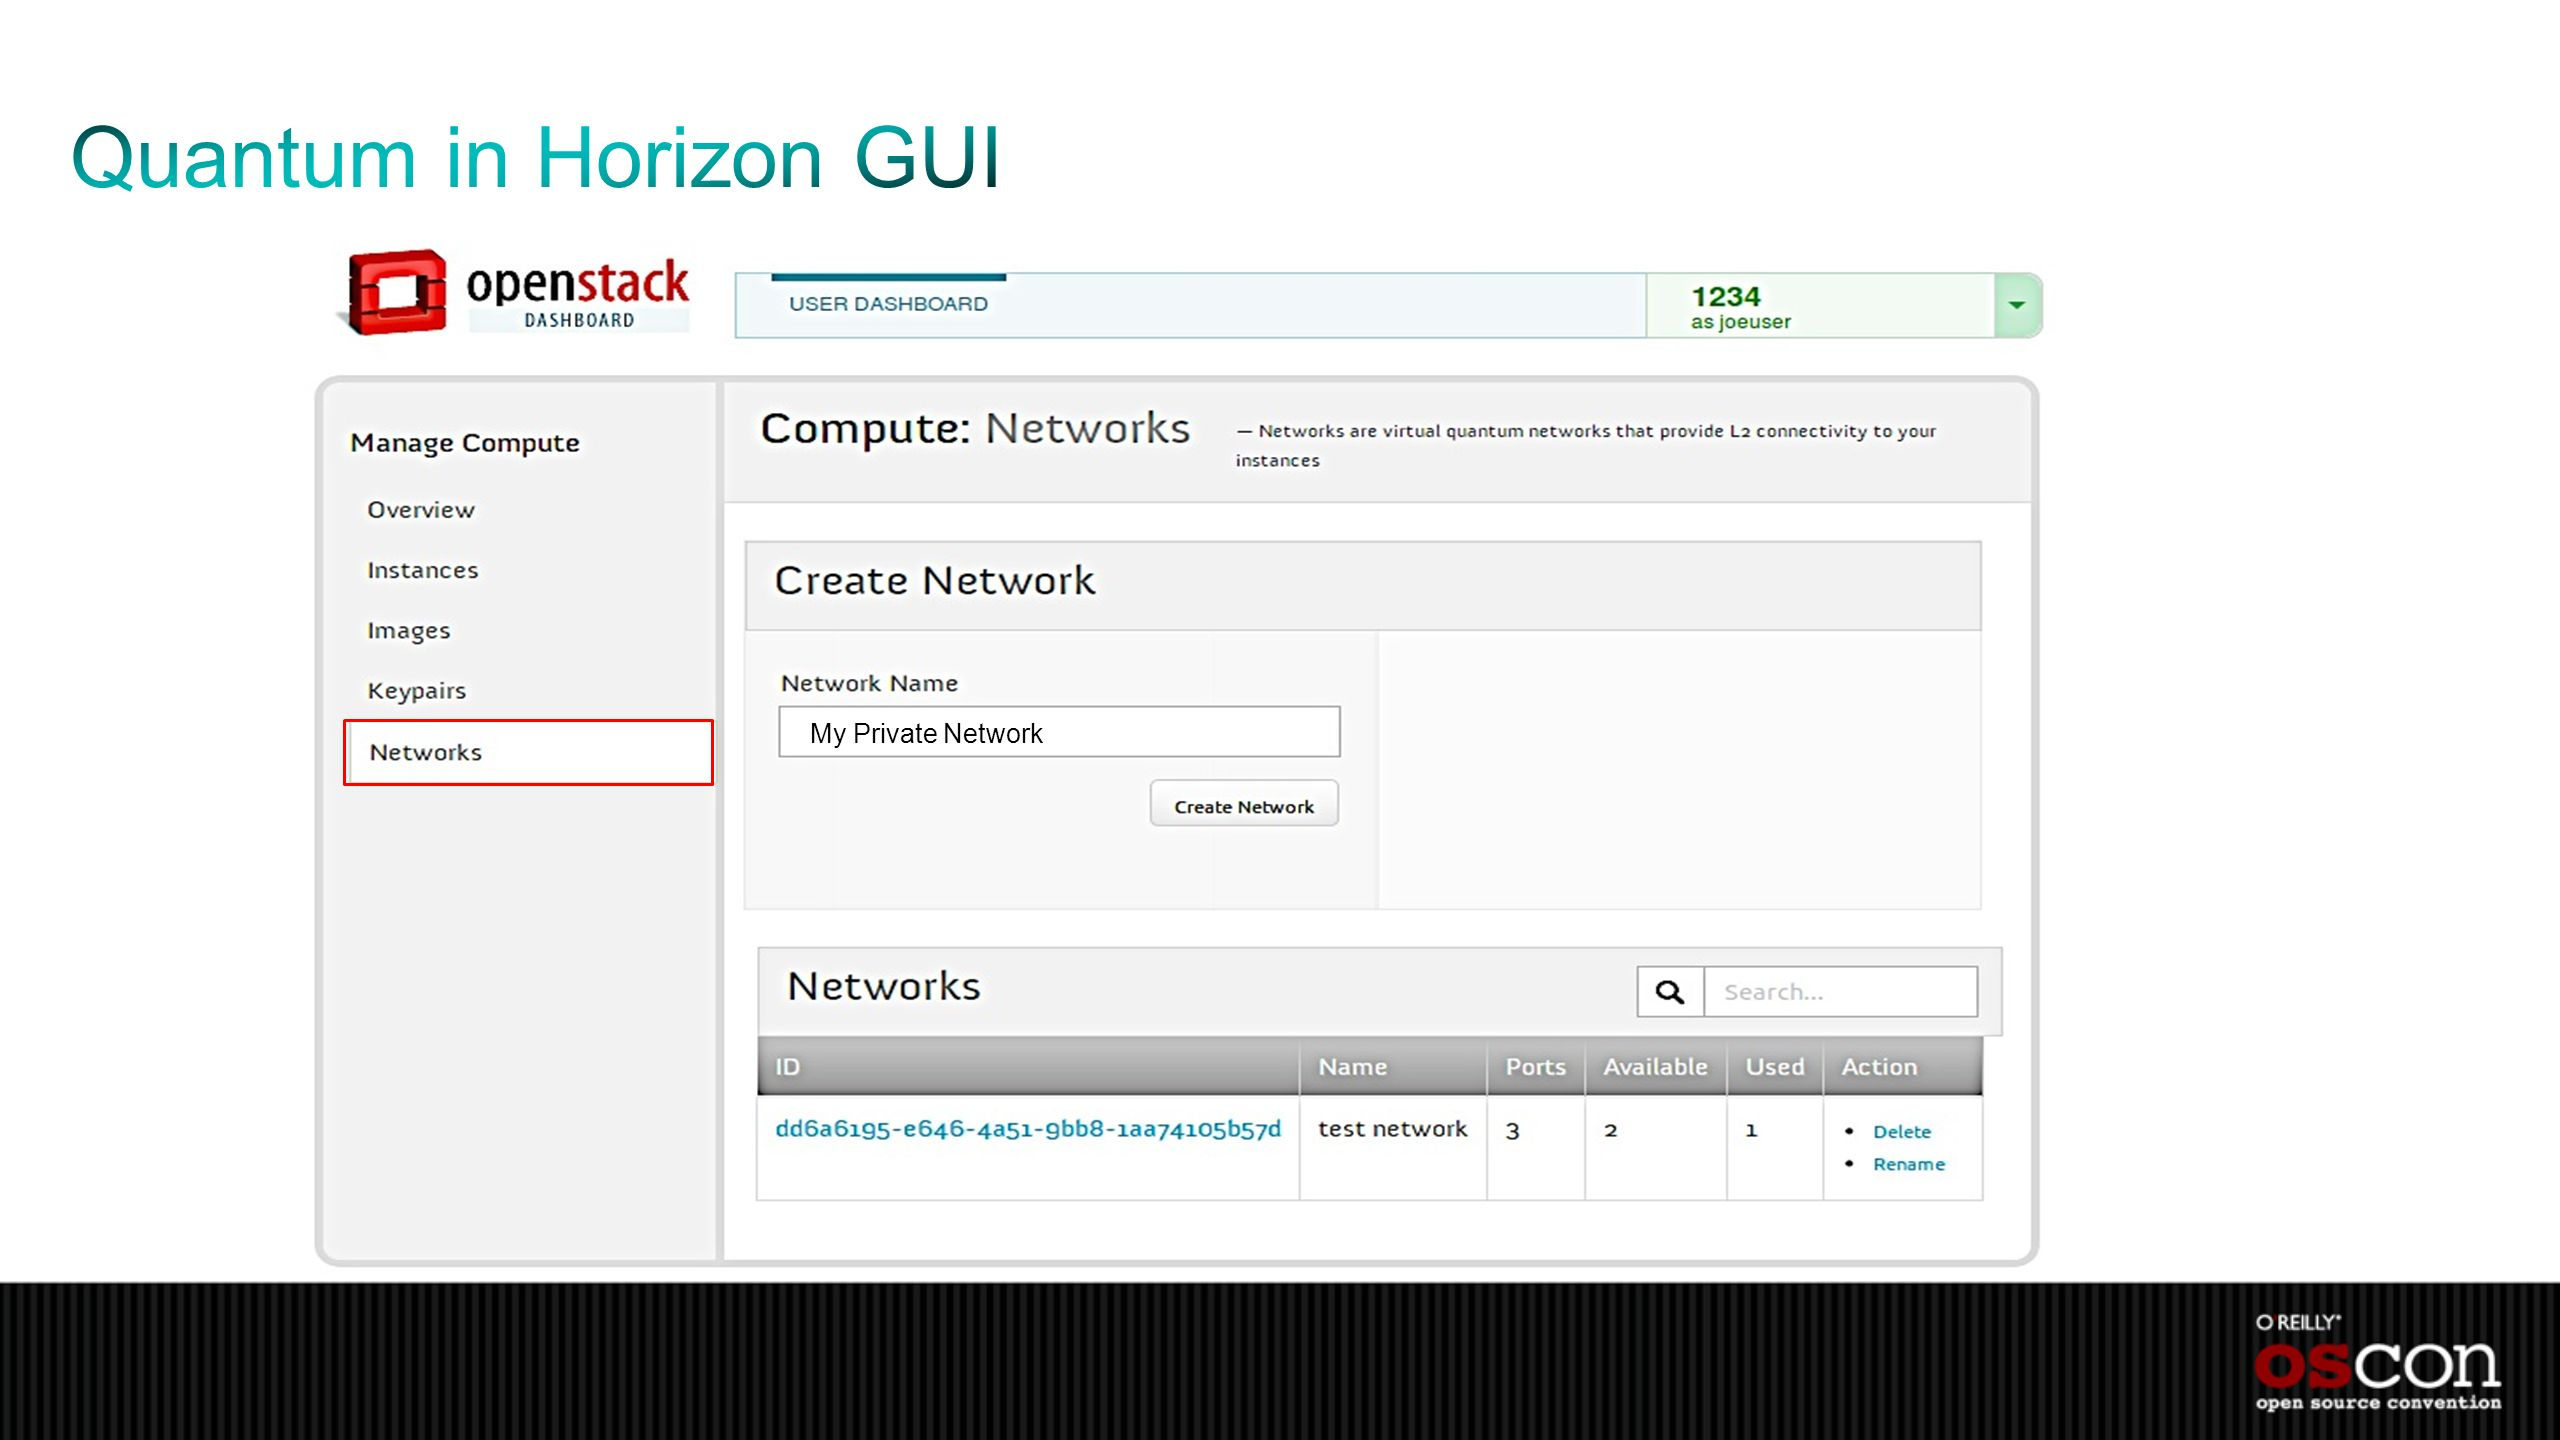 Quantum in Horizon GUI My Private Network